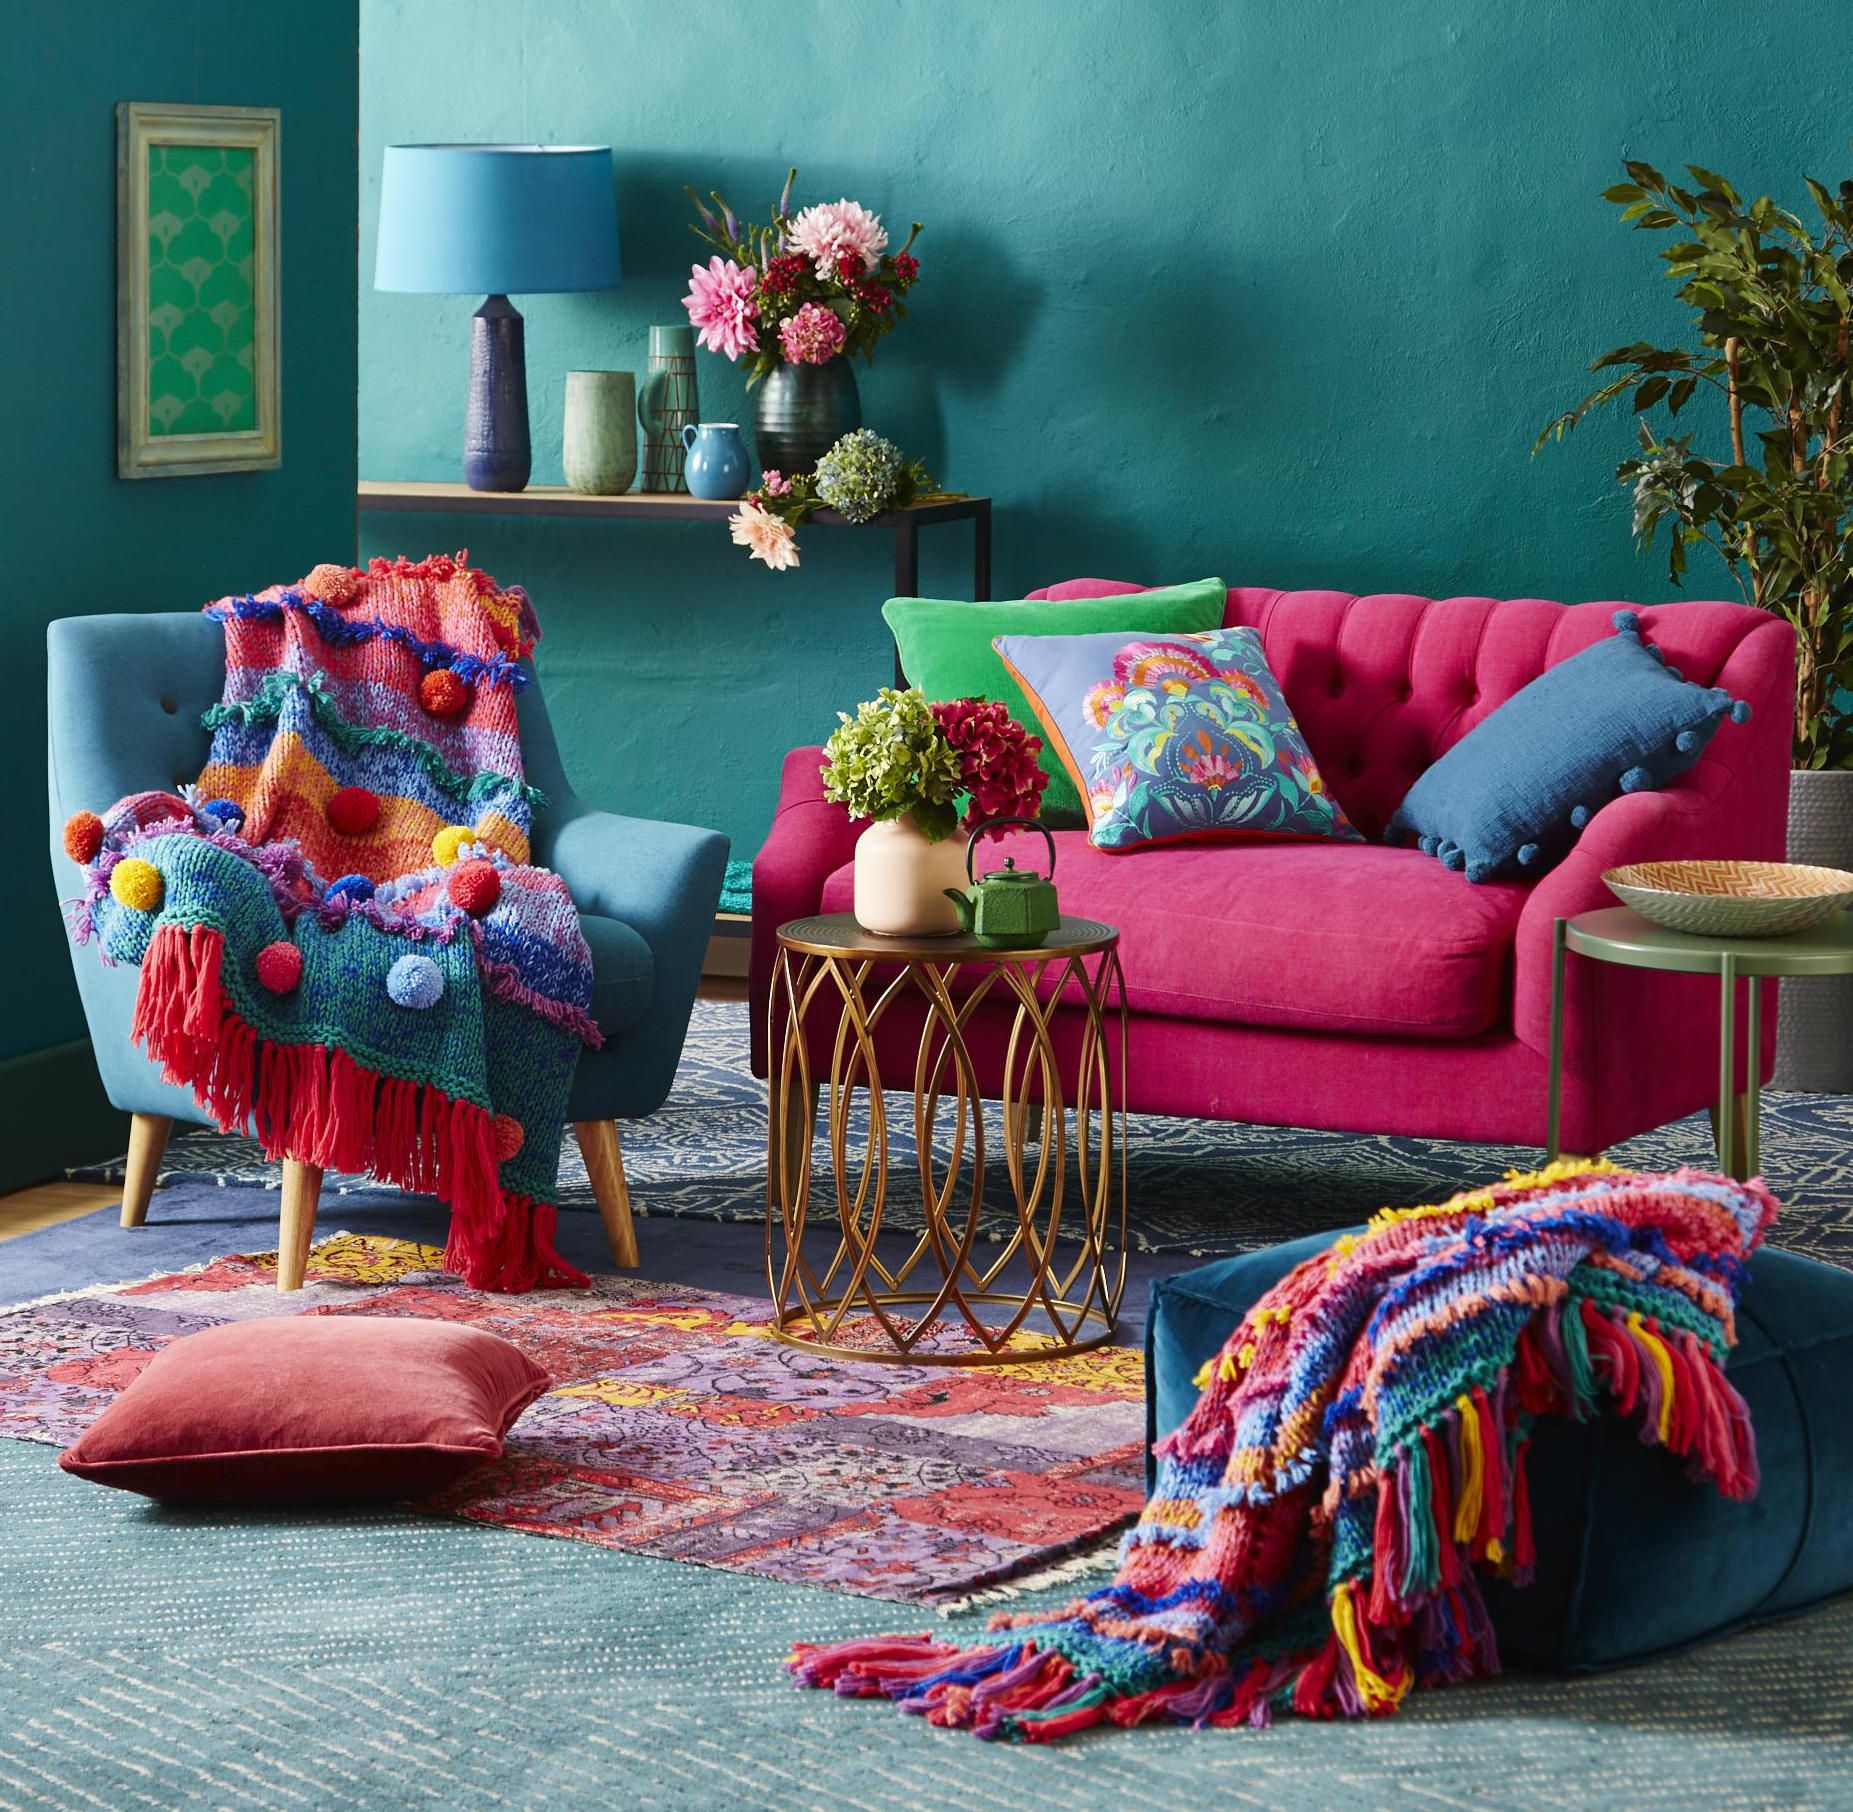 Colorful Bohemian Rooms: Nothing Is More Welcoming Than A Tastefully Placed Splash